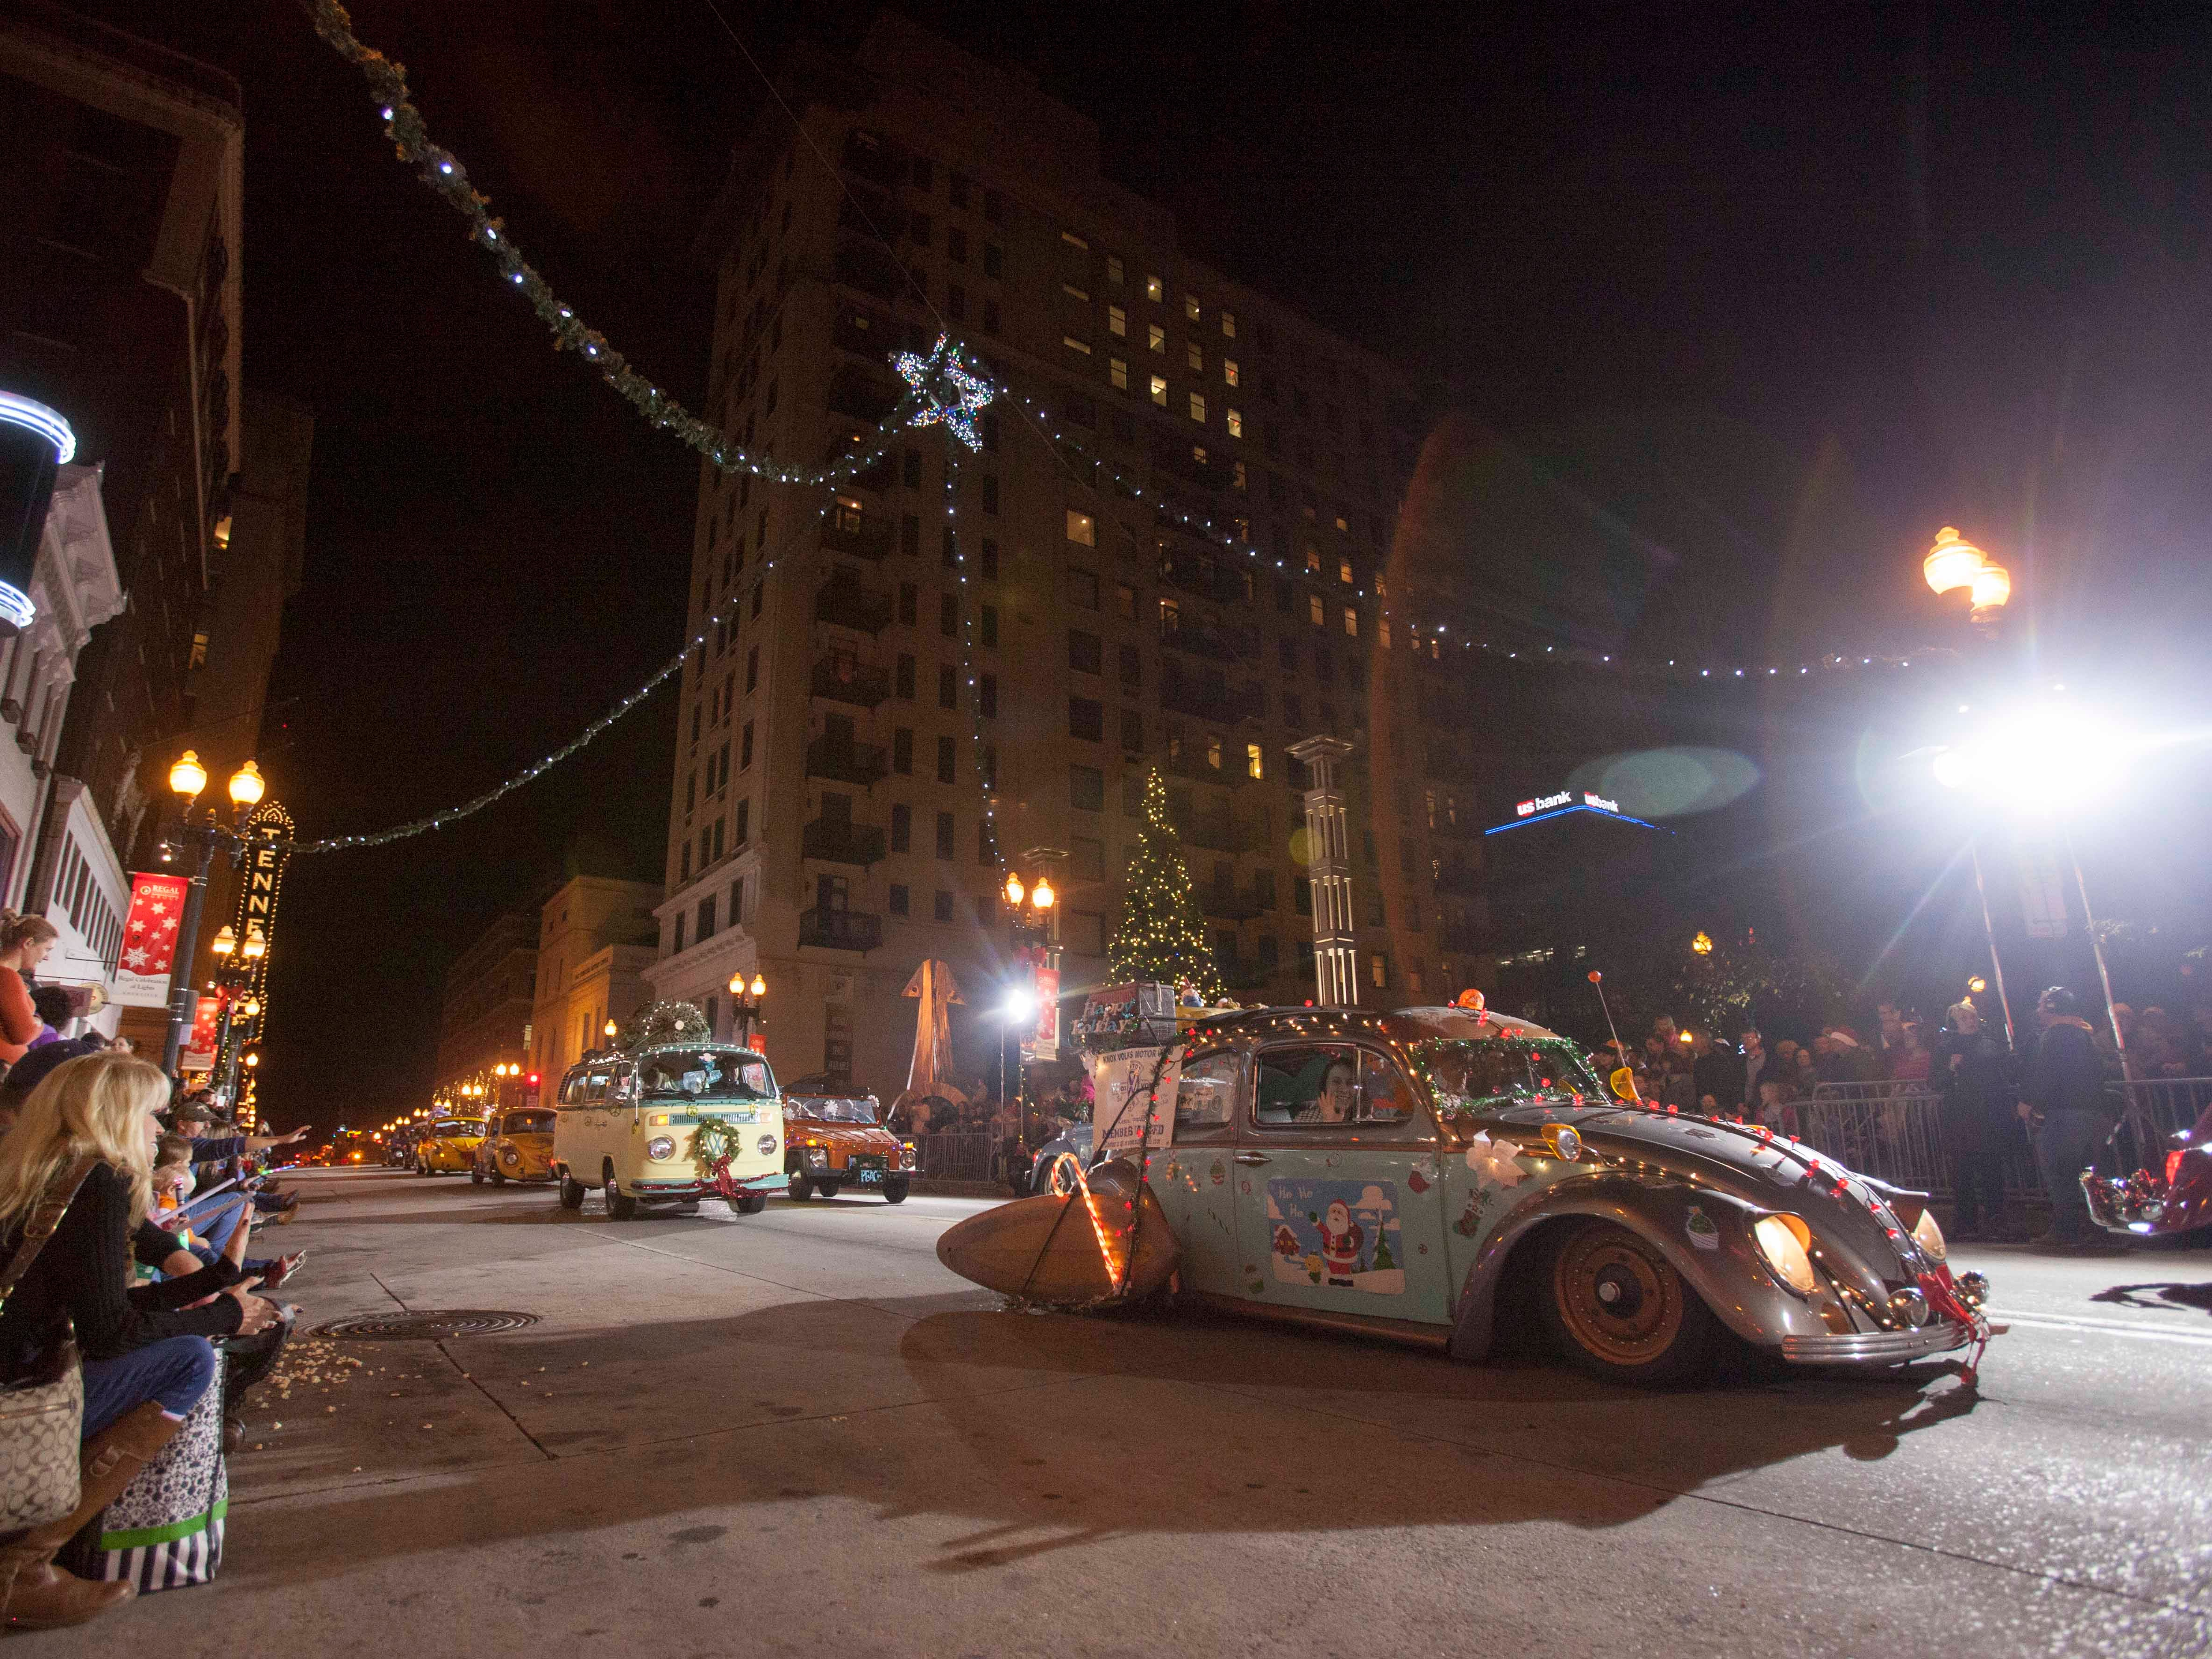 Members of the Knox Volks Motor Club drive their Volkswagens down Gay Street during the Christmas parade downtown Friday, Dec. 7, 2012.